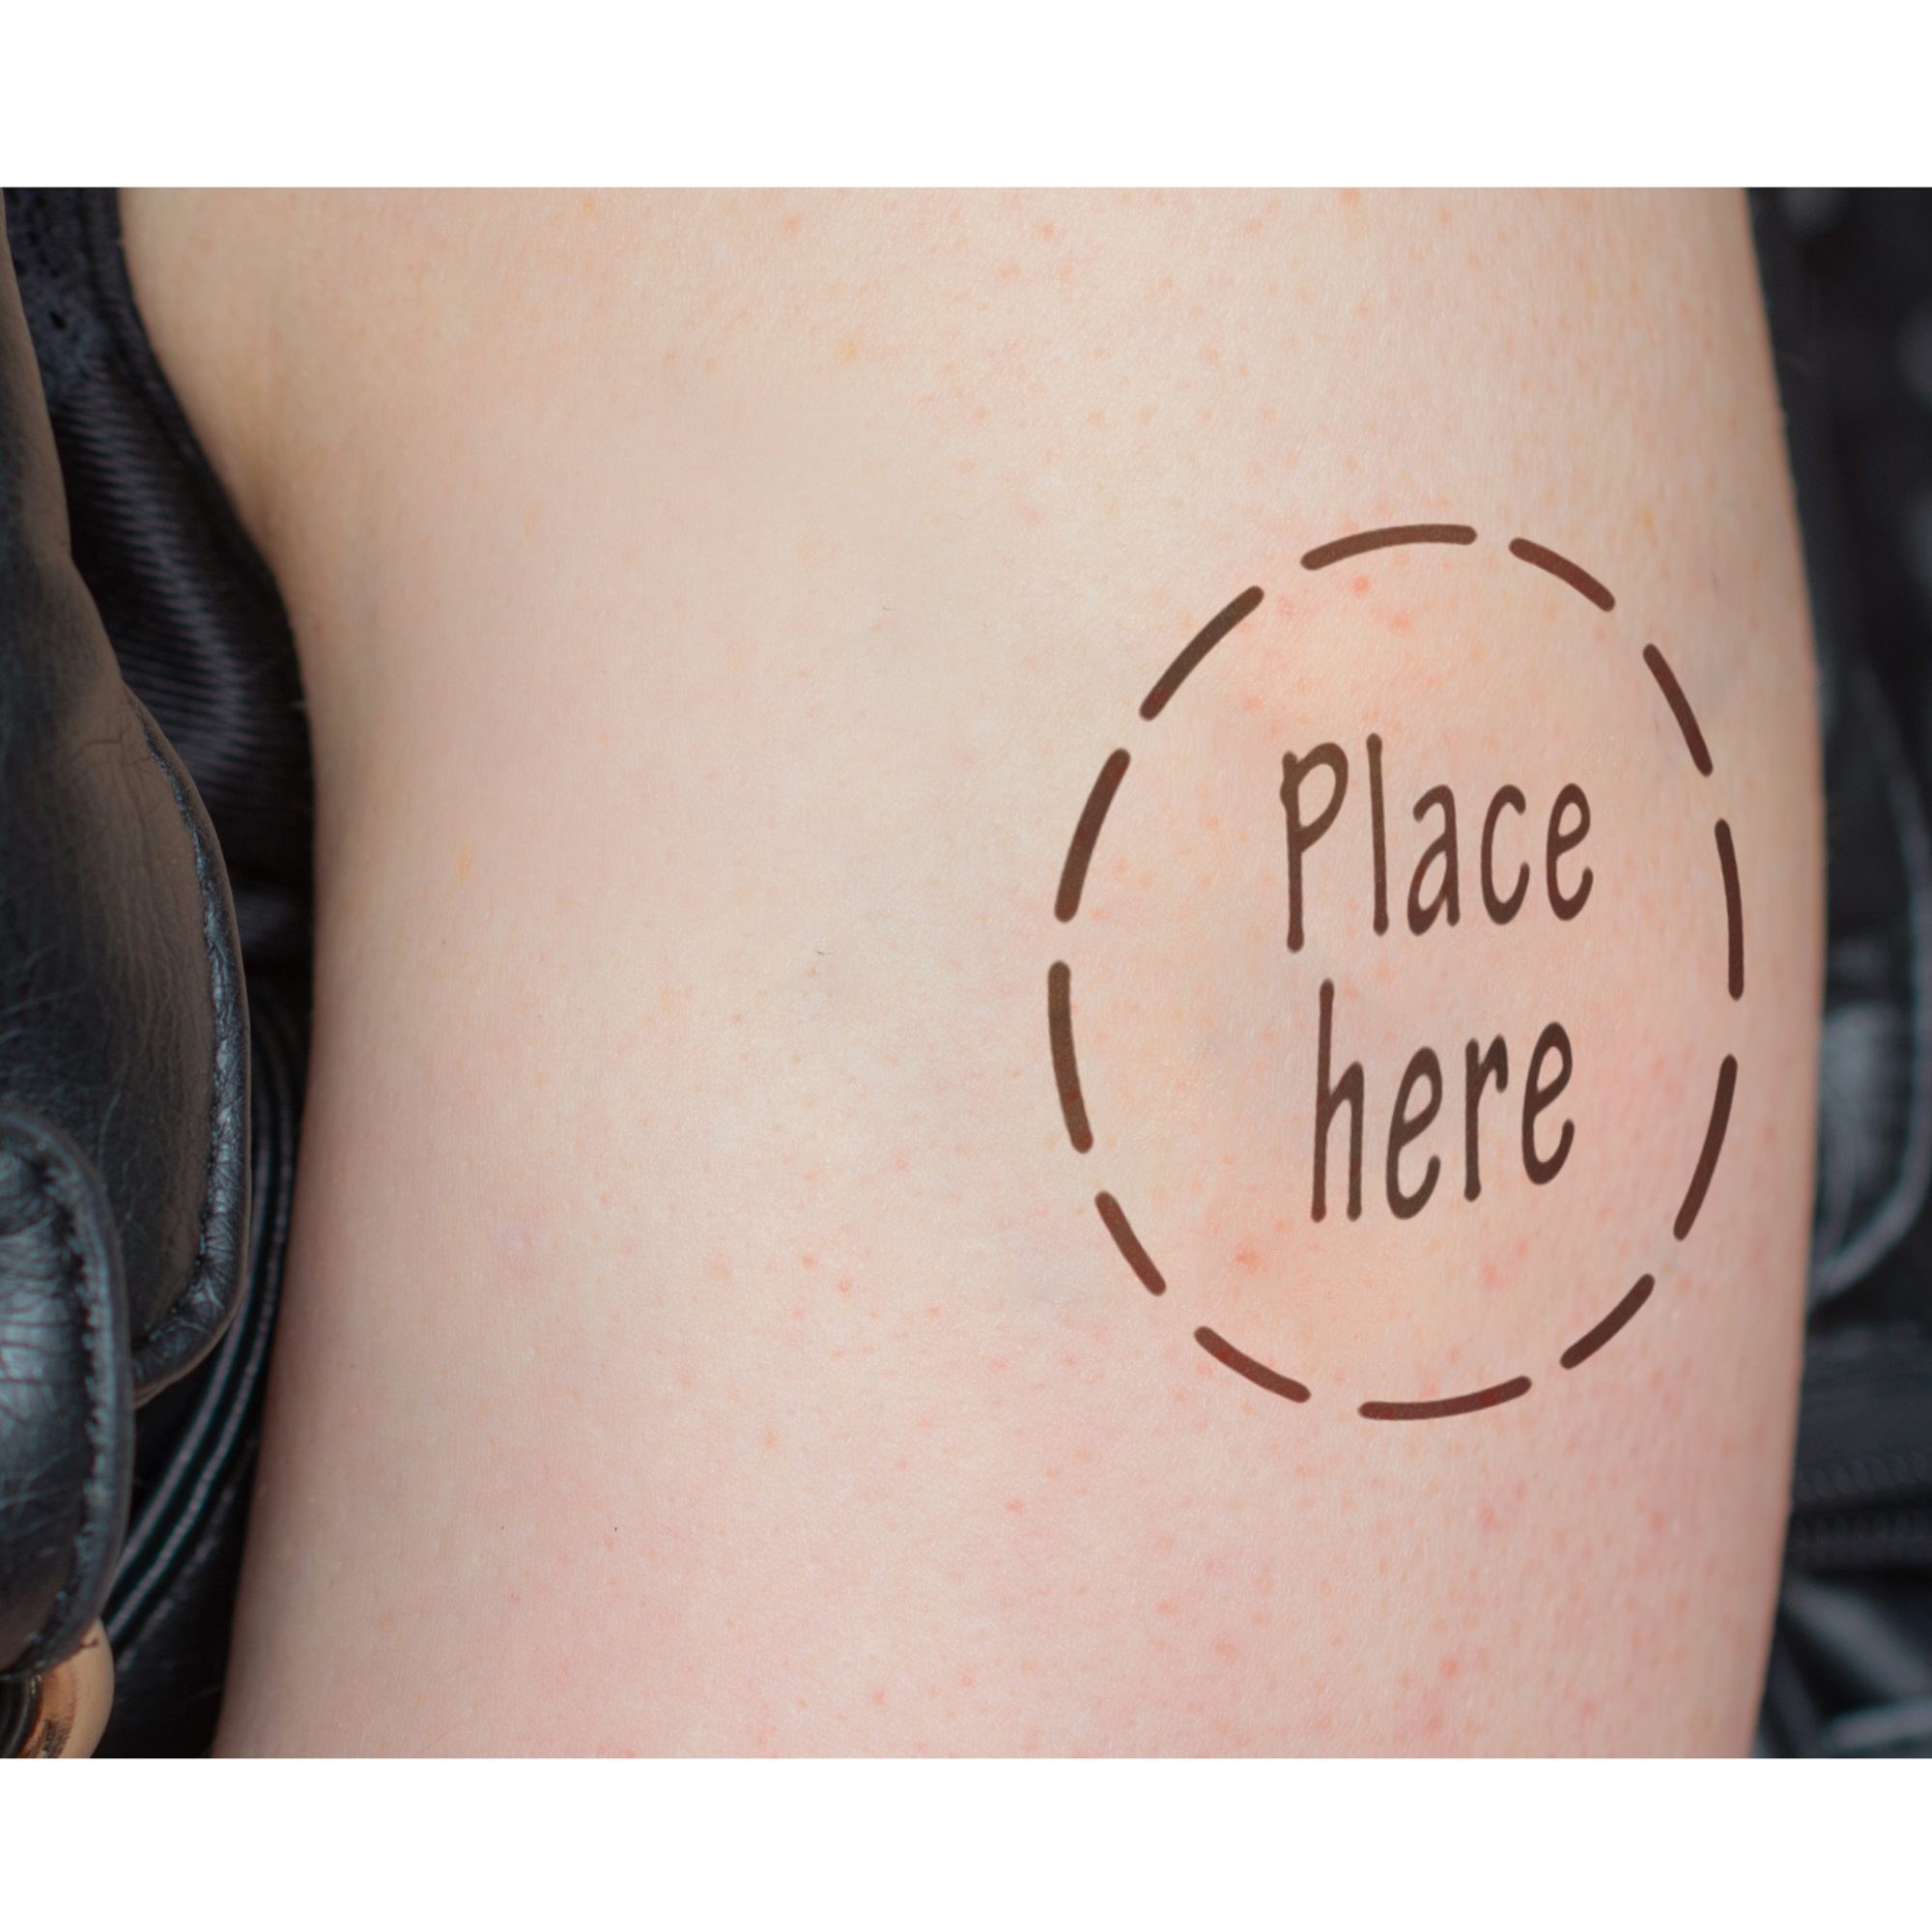 tattoo-place-here-fwx